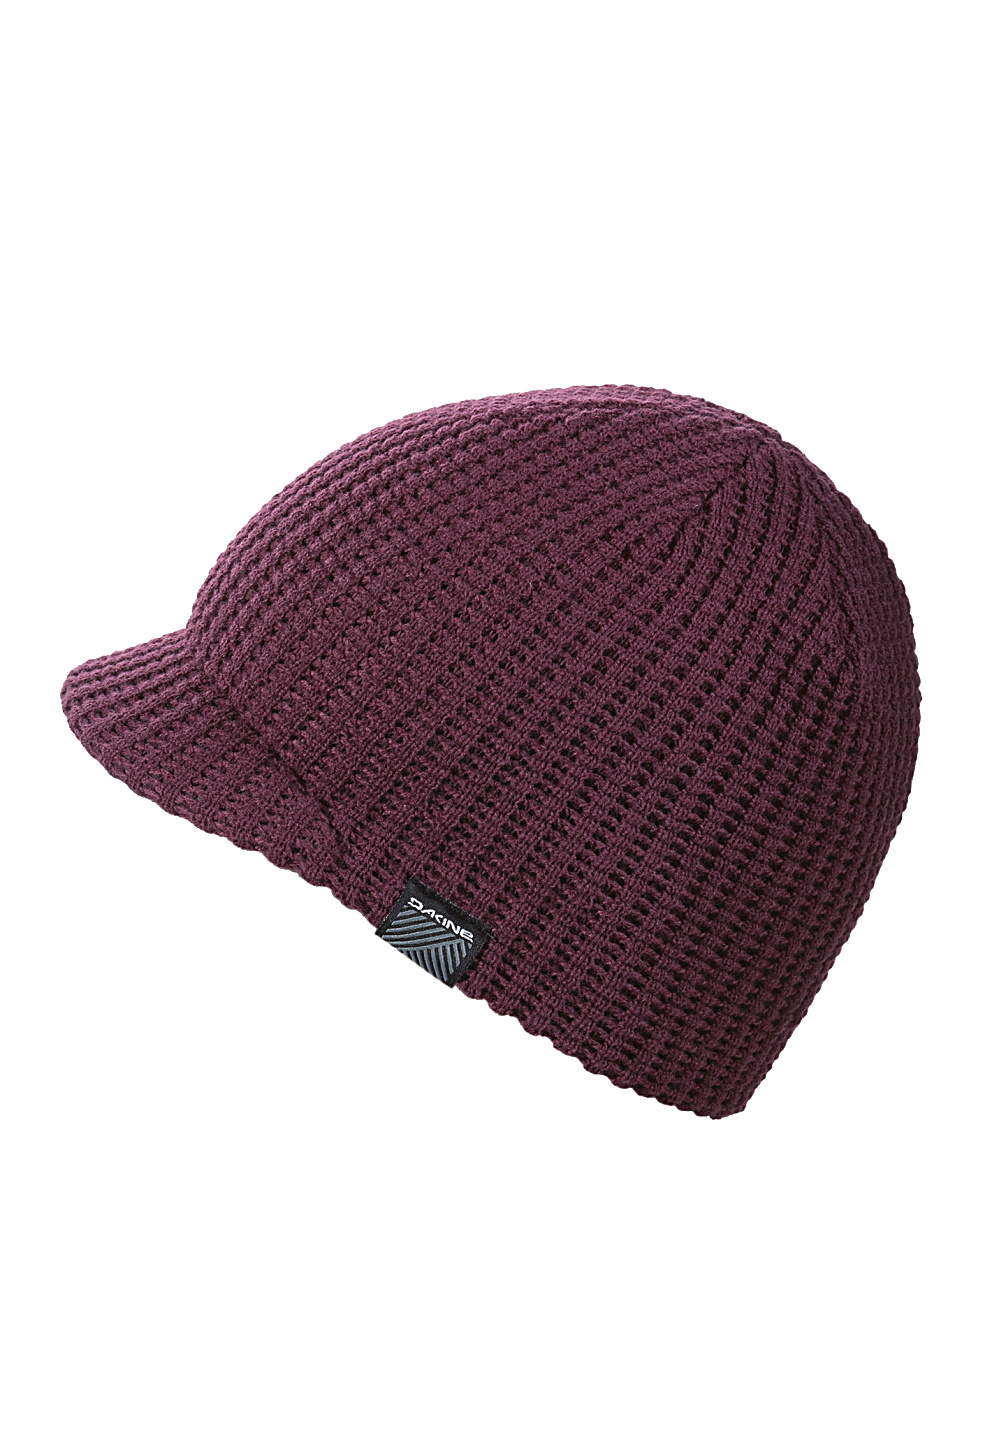 5b66507dc68 ... Peaked Caps · Dakine Waffle Visor - Beanie for Men - Red. Back to  Overview. This product is currently out of stock.